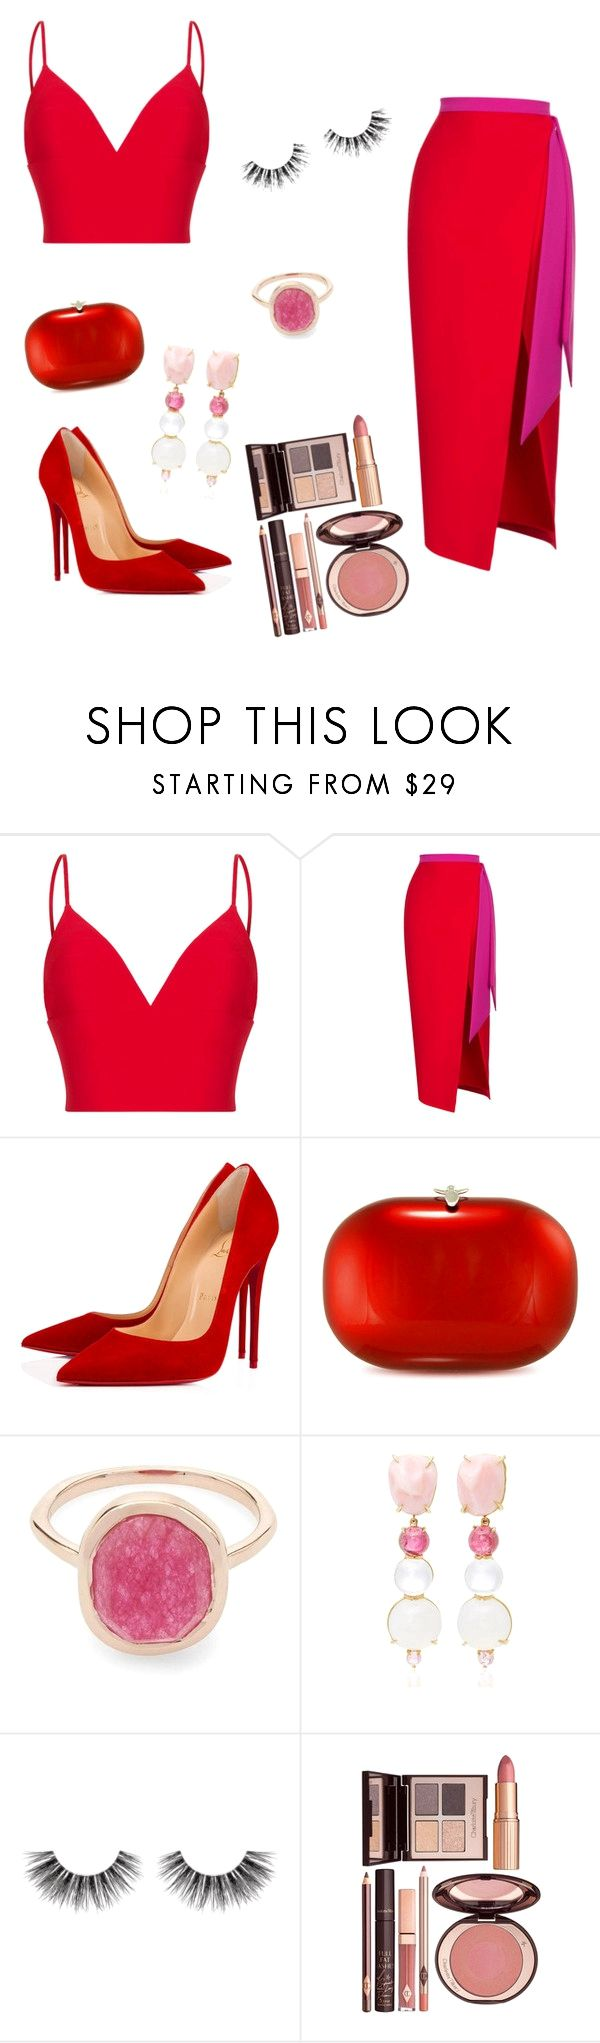 """""""Sem título #57"""" by gabigiandu ❤ liked on Polyvore featuring Rasario, Christian Louboutin, Jeffrey Levinson, Liberty, Daria de Koning, Velour Lashes and Charlotte Tilbury on the lookout for limited offer,no tax and free shipping.#shoes #womenstyle #heels #womenheels #womenshoes  #fashionheels #redheels #louboutin #louboutinheels #christanlouboutinshoes #louboutinworld"""